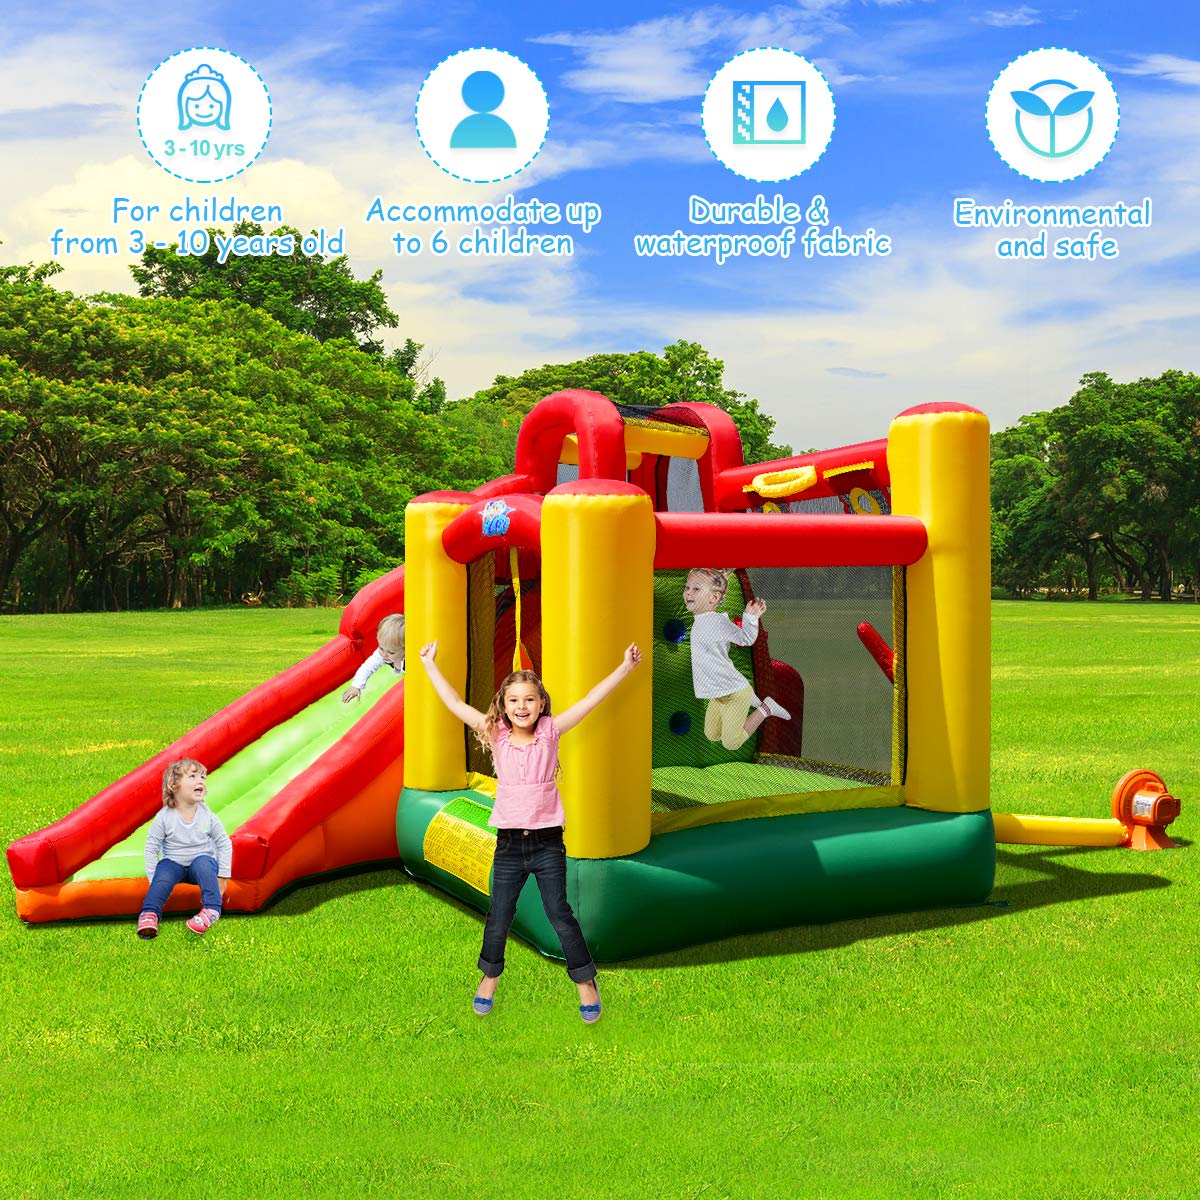 Costzon Inflatable Bounce House, 11 in 1 Mighty Kids Jump and Slide Castle w/ Climbing Wall, Tunnel, Basketball Hoop, Playing Area, Including Oxford Carry Bag, Repairing Kit, Stakes, 780W Air Blower by Costzon (Image #2)